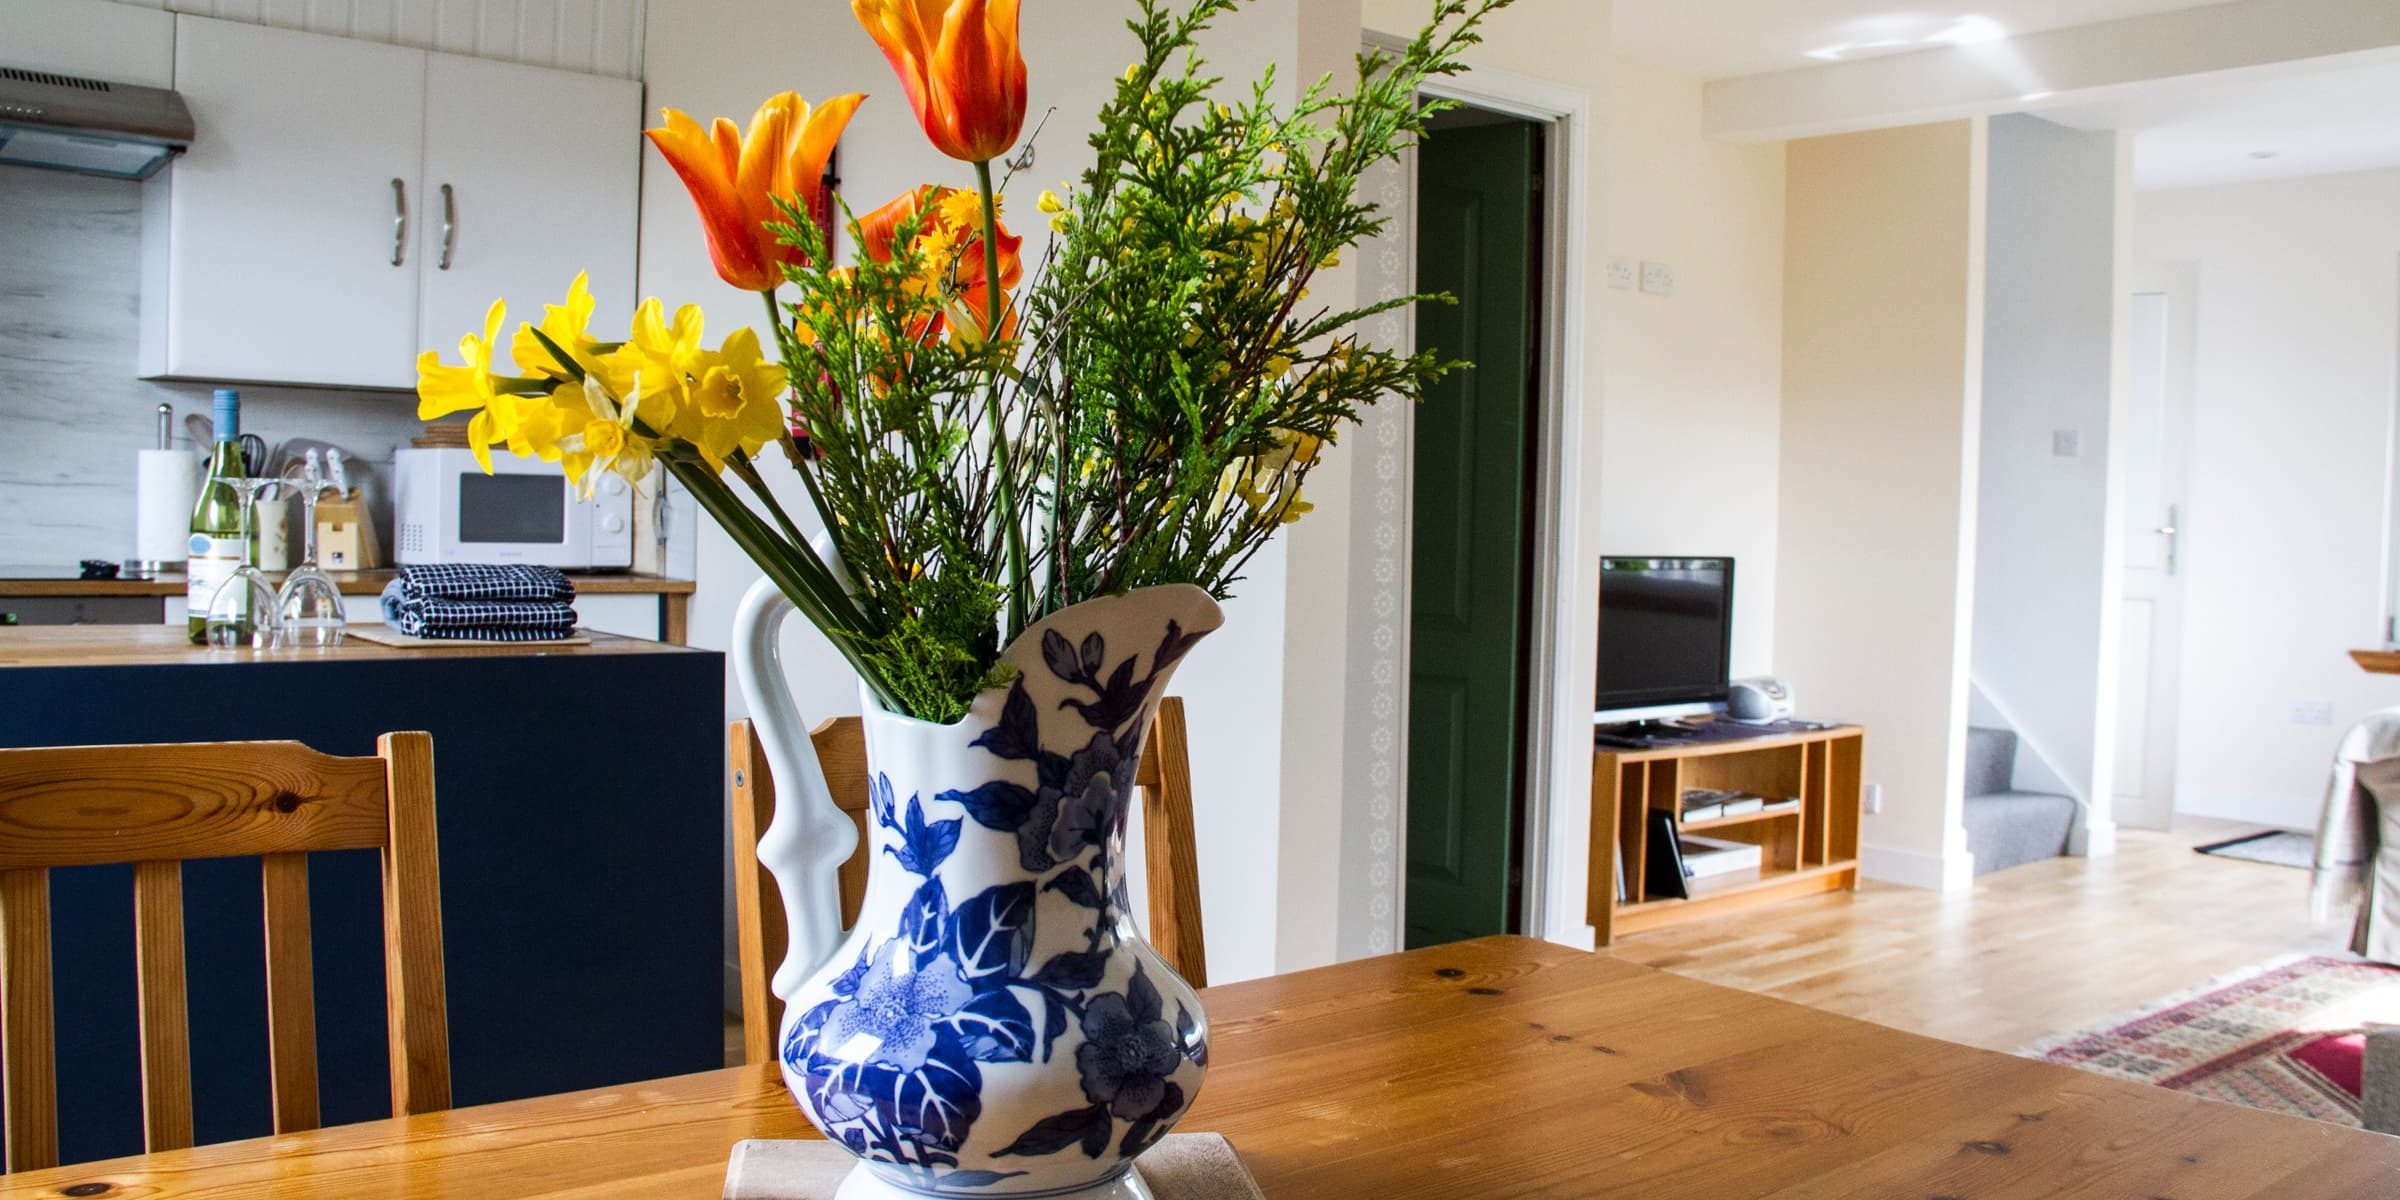 diningr room table with orange flower vase and colourful flowers